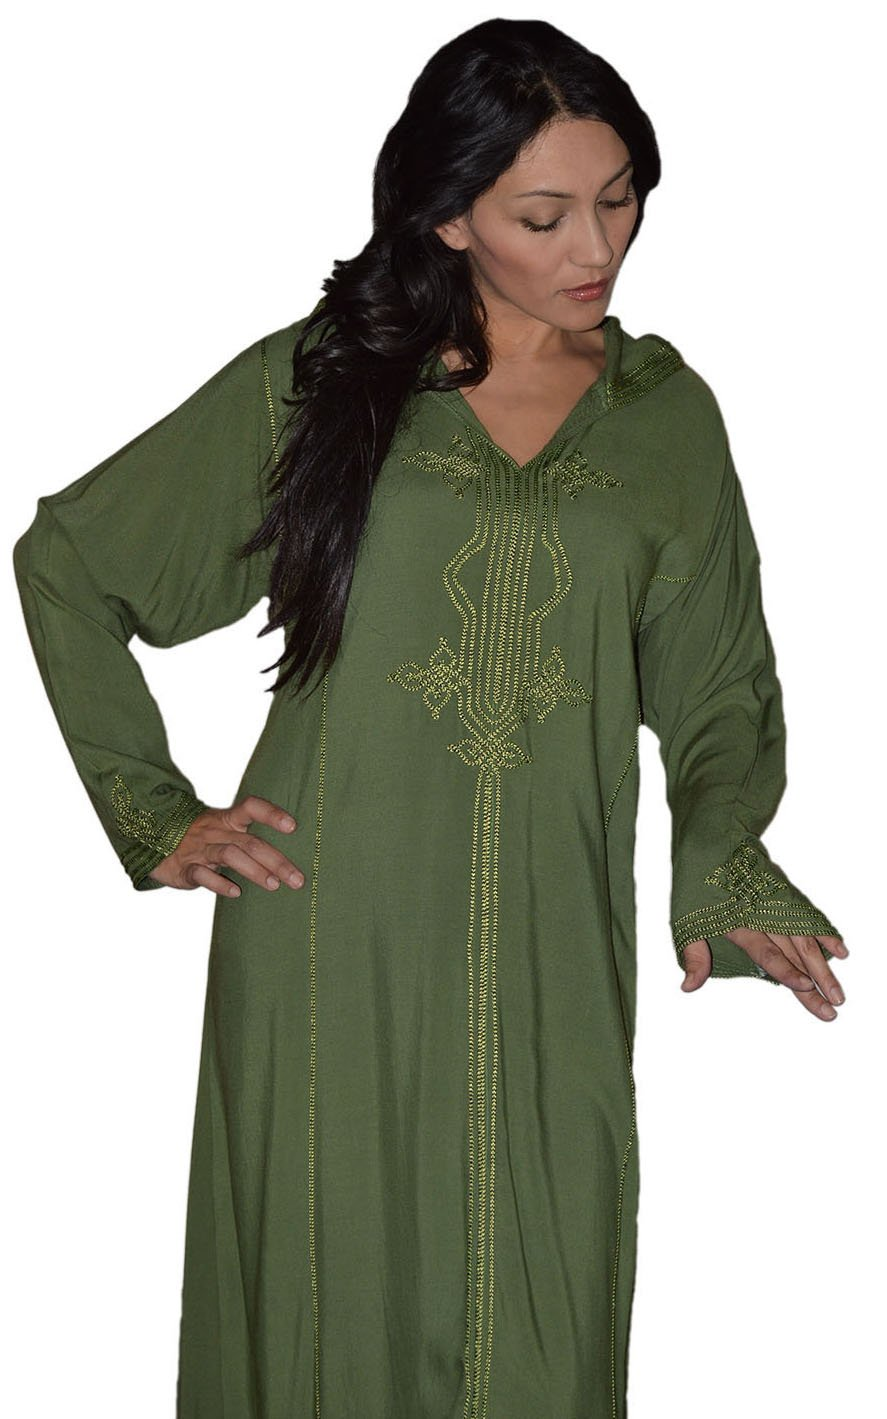 Moroccan Caftans Women Hand Made Djellaba Embroidered Size Extra Large Green by Moroccan Caftans (Image #2)